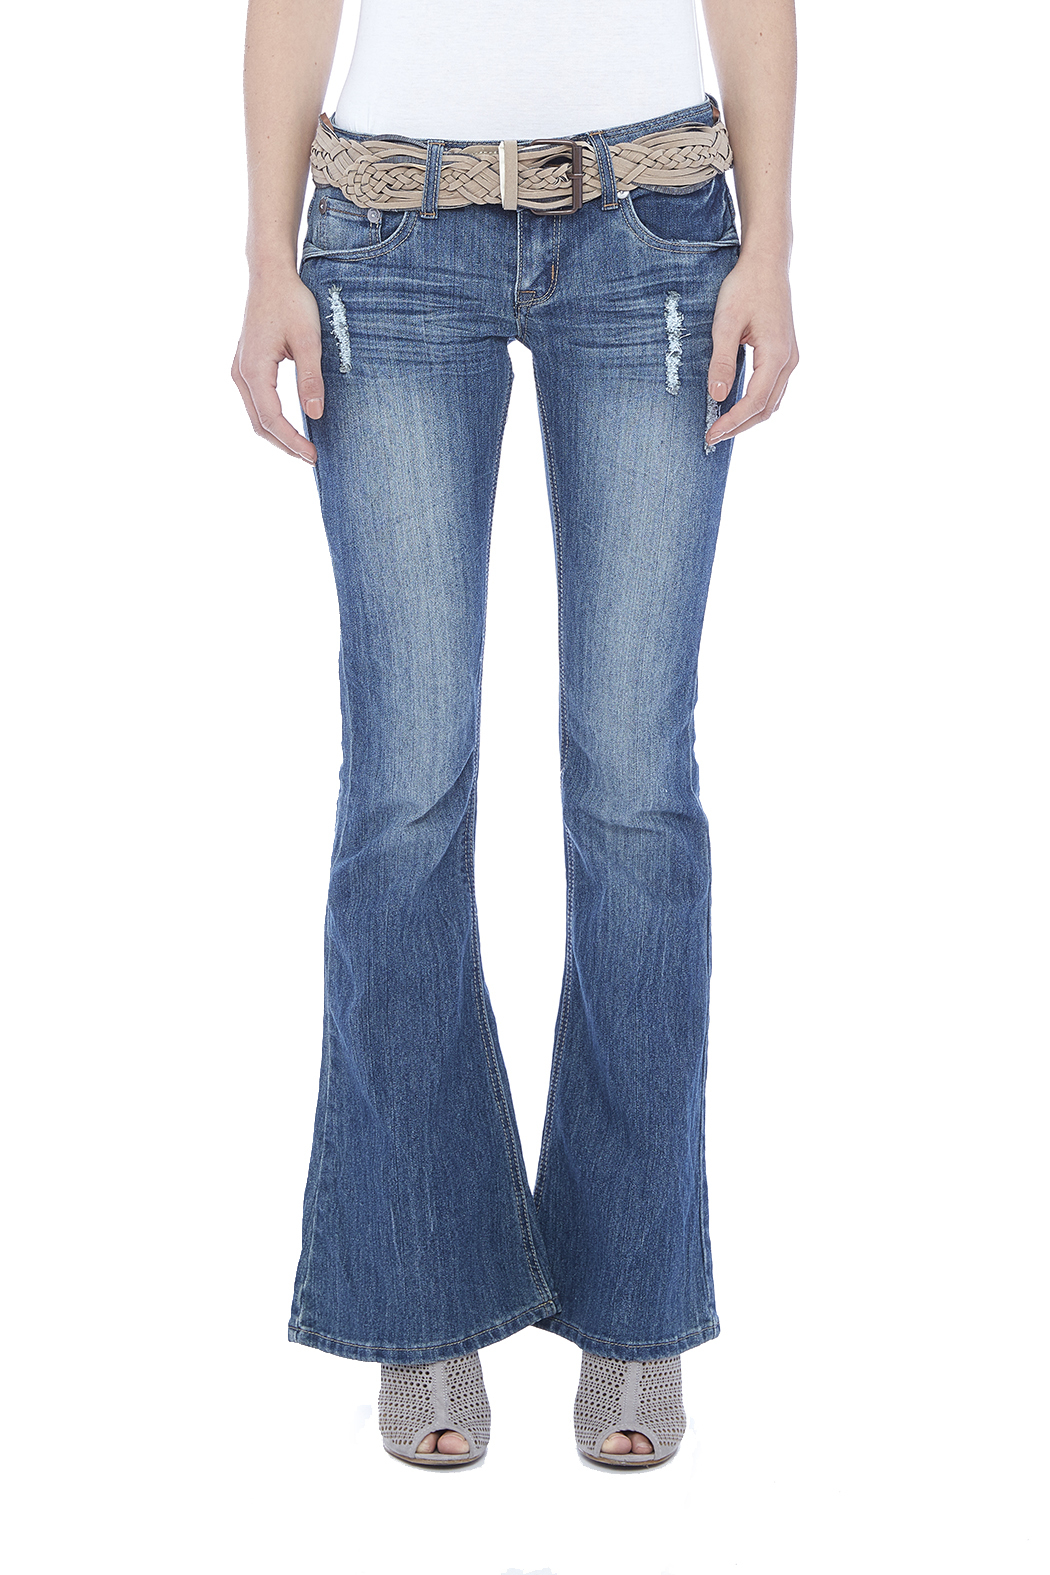 Dollhouse Low Rise Flare Jeans - Side Cropped Image